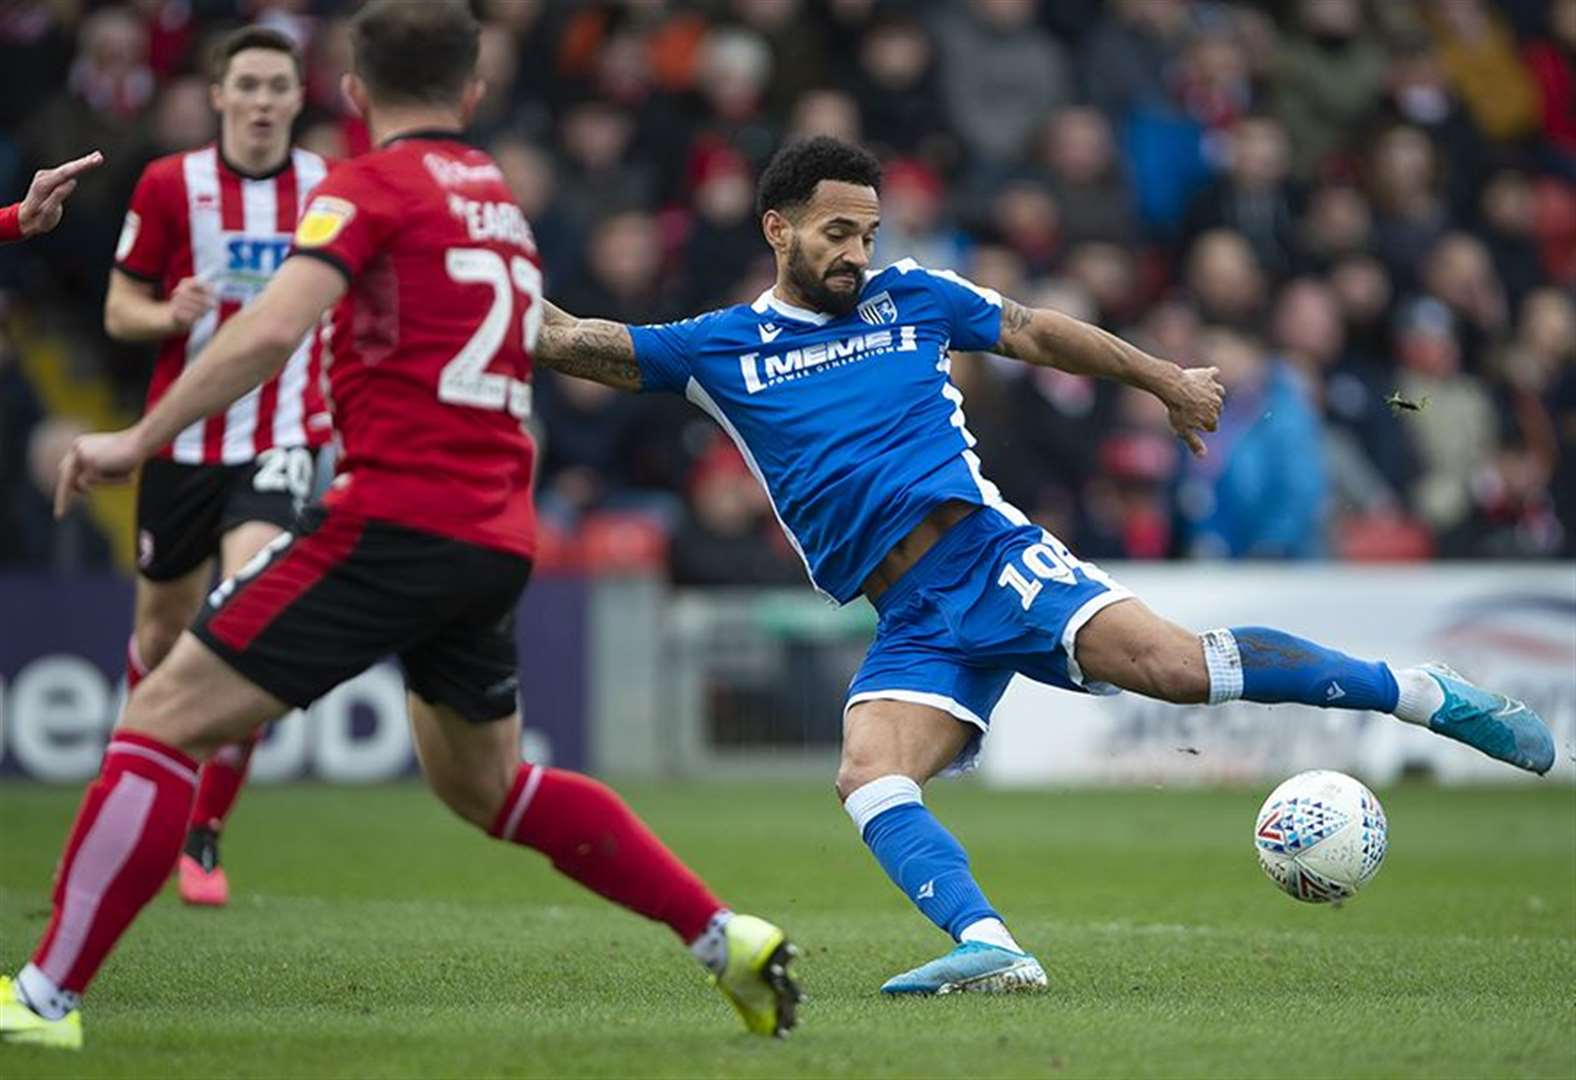 Report: Gills bag away point